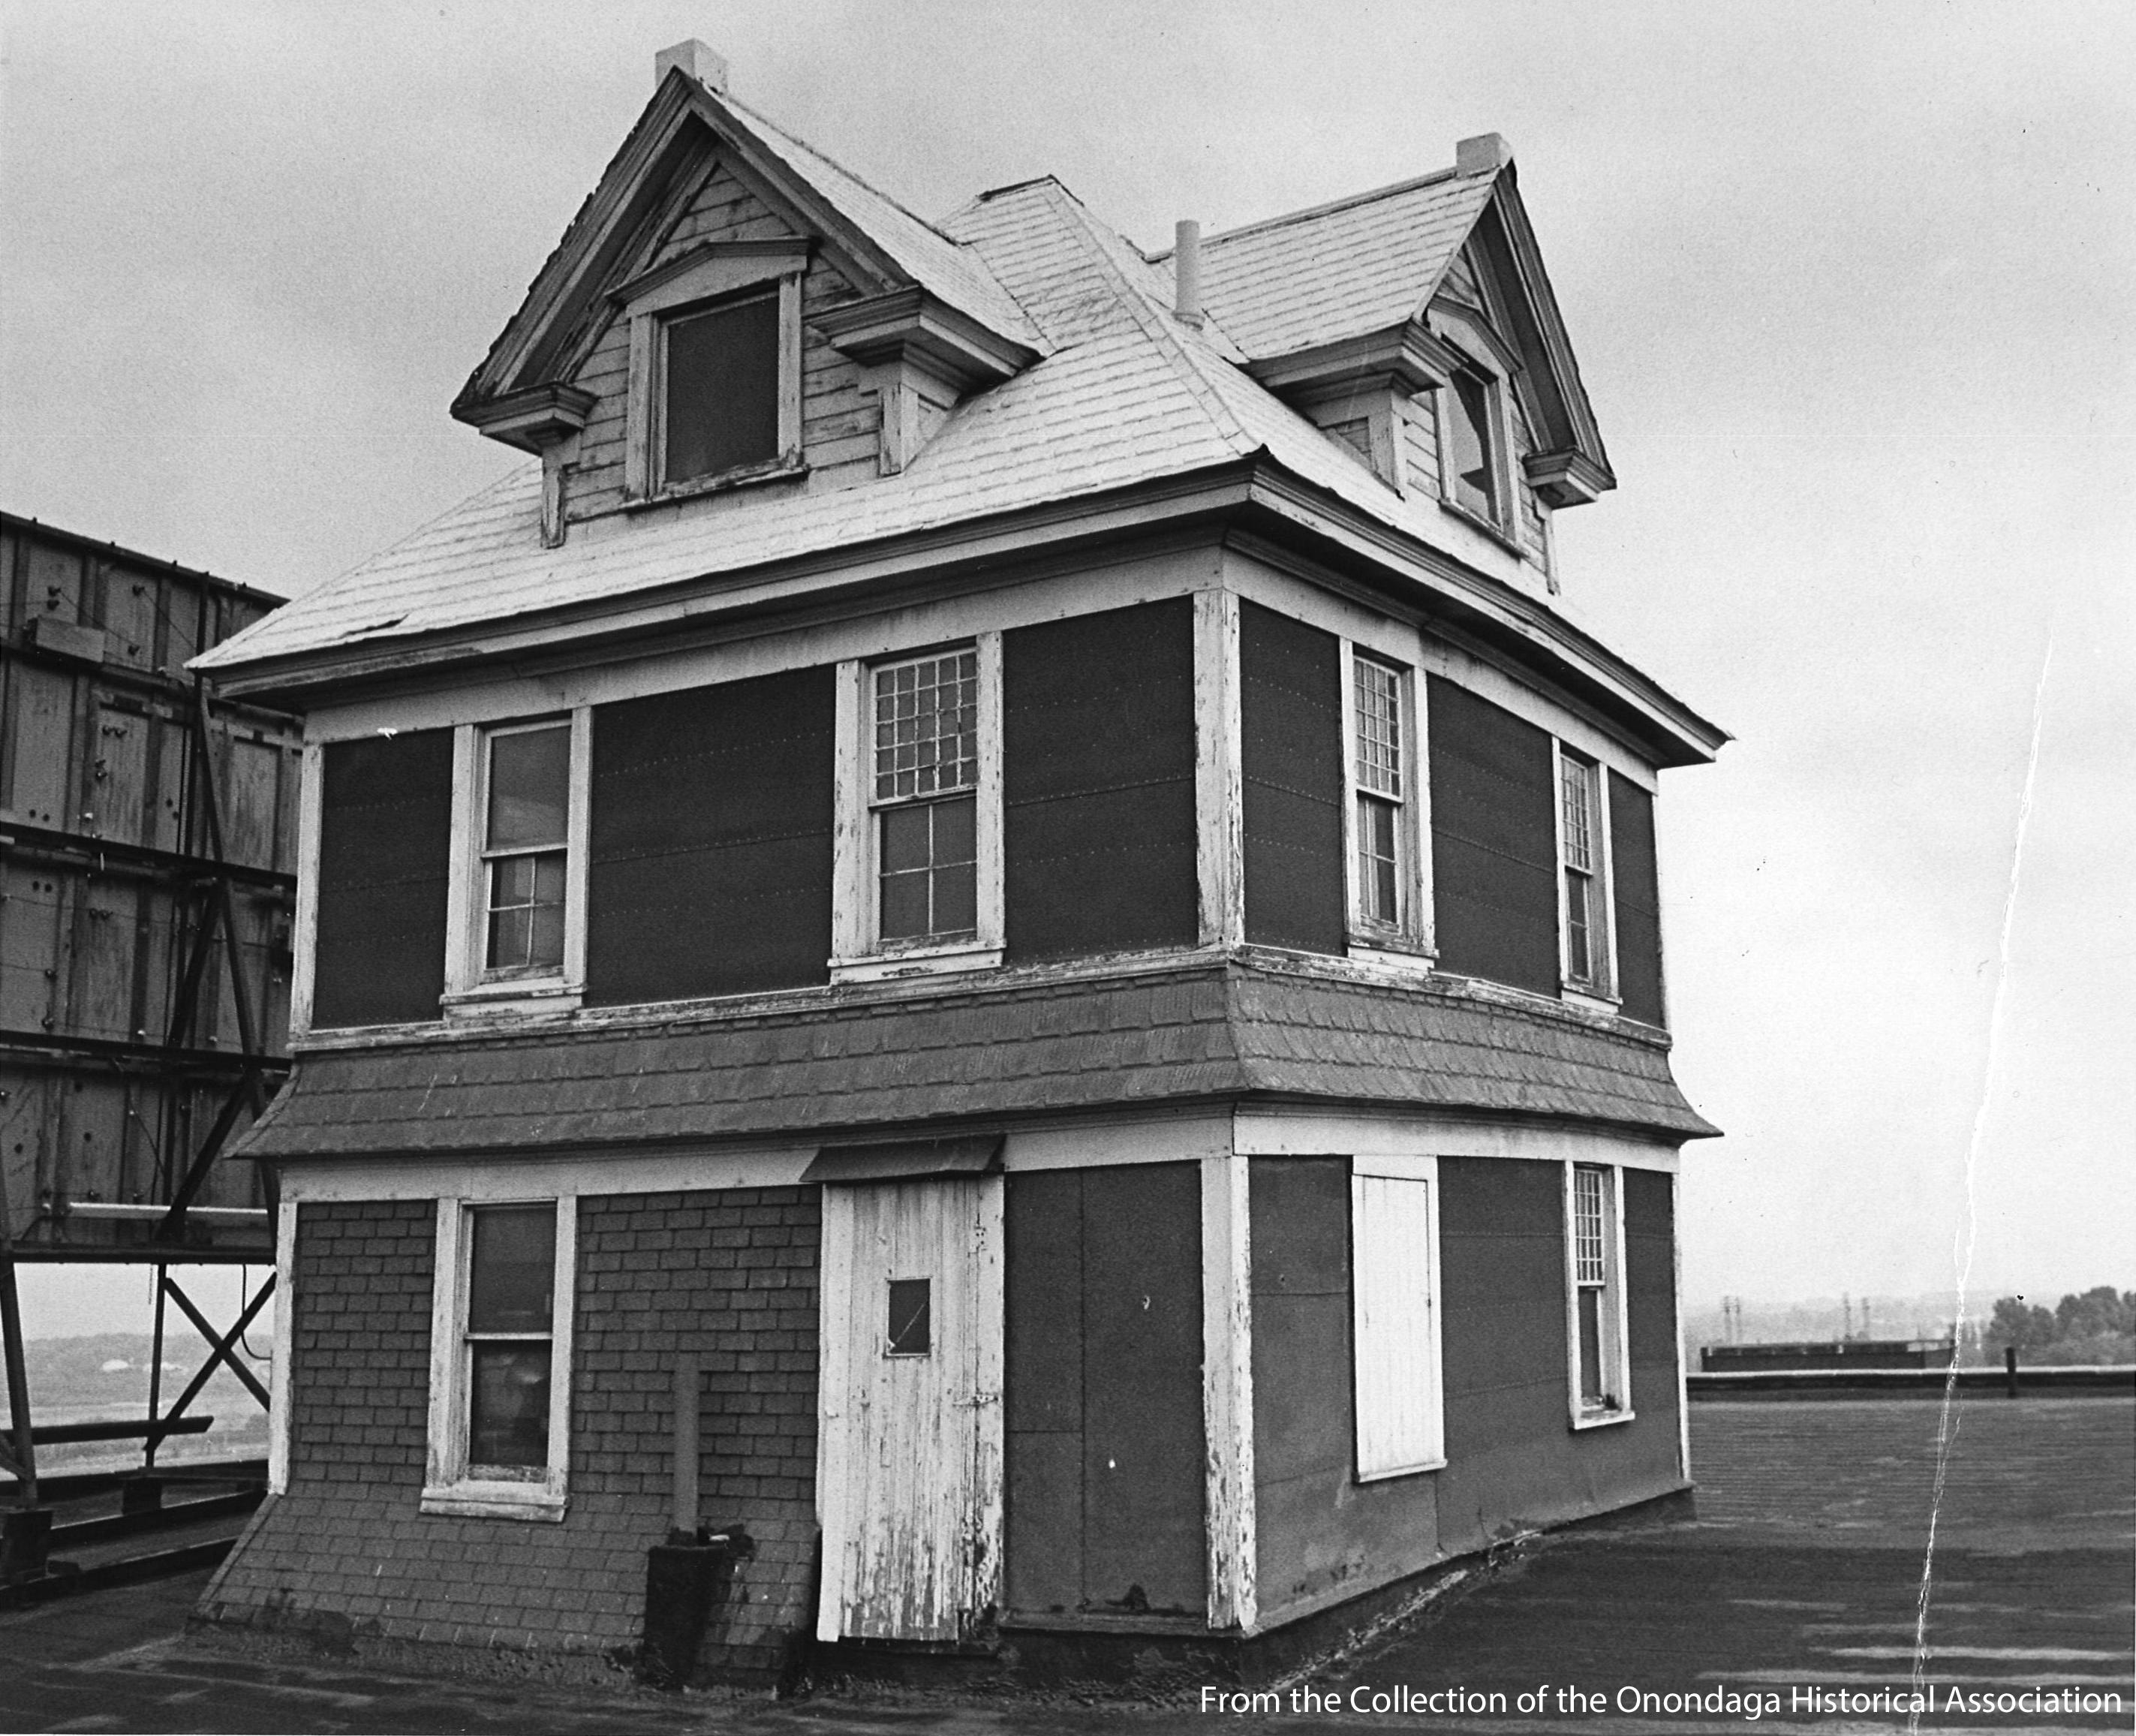 While the structure on the roof may have looked like a cozy place to stay, in 1937 the daughter of the man who built the building, said it was simply put there as a gimmick{&amp;nbsp;}to attract attention to the business.{&amp;nbsp;} (Onondaga Historical Association)<p></p>